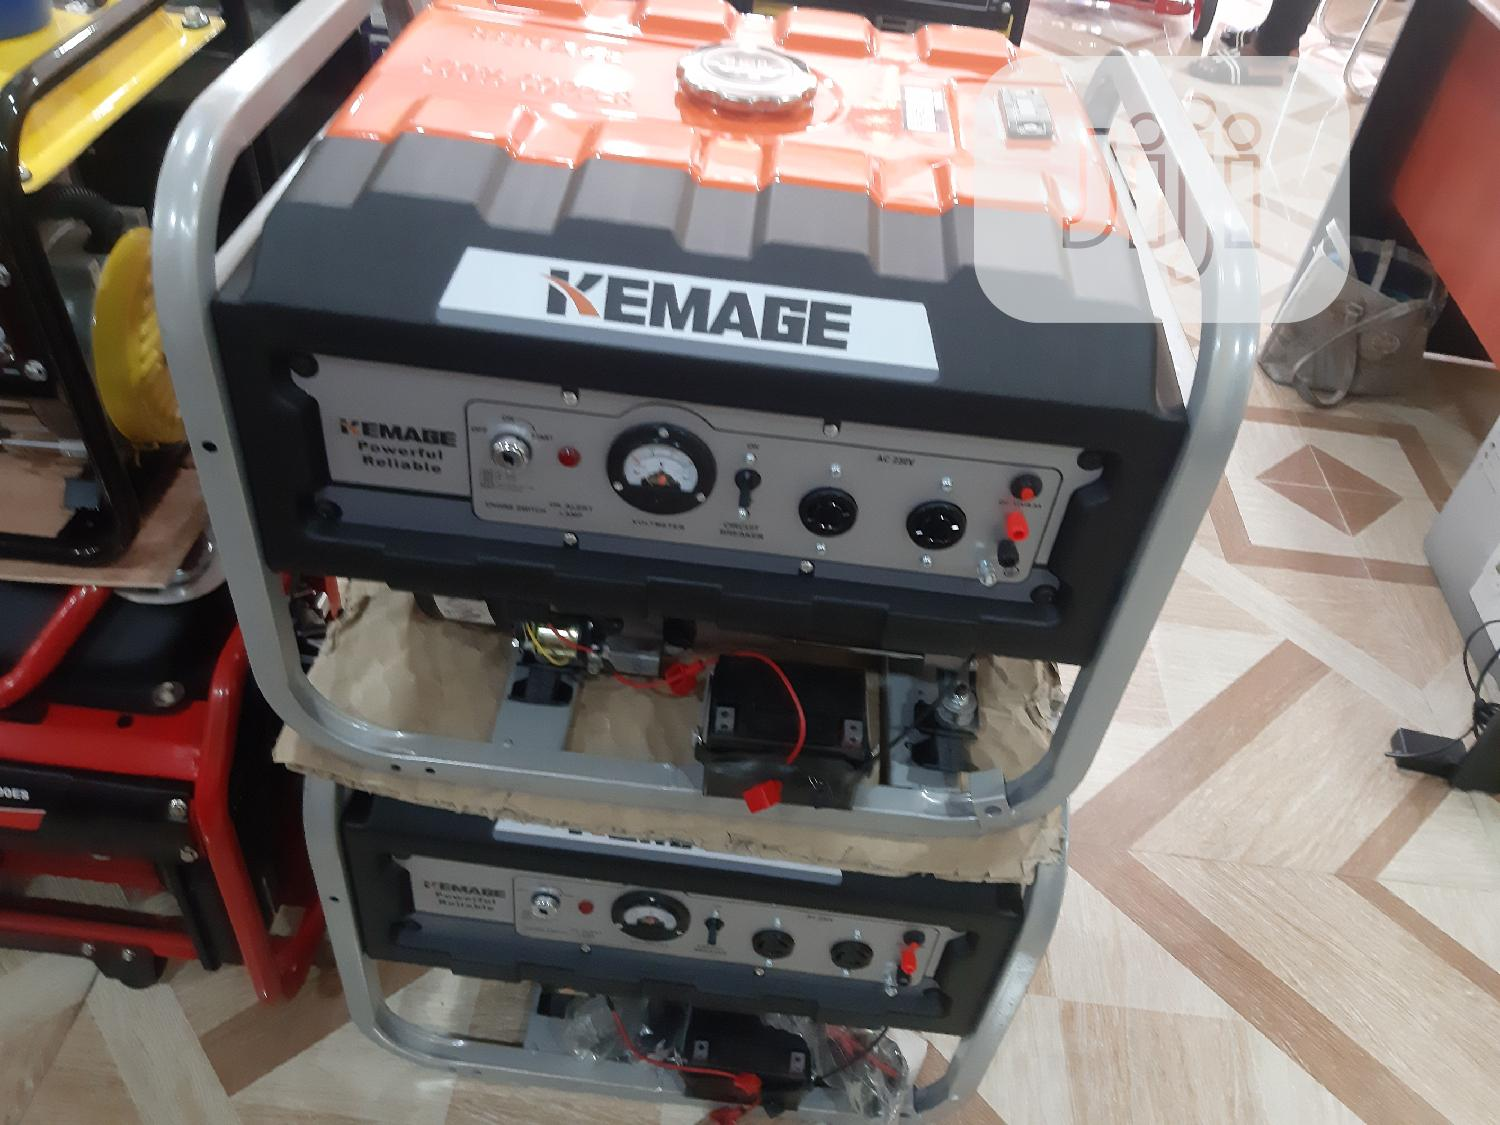 Kemage Generator 3.8k Kva With Remote Control | Electrical Equipment for sale in Wuse 2, Abuja (FCT) State, Nigeria